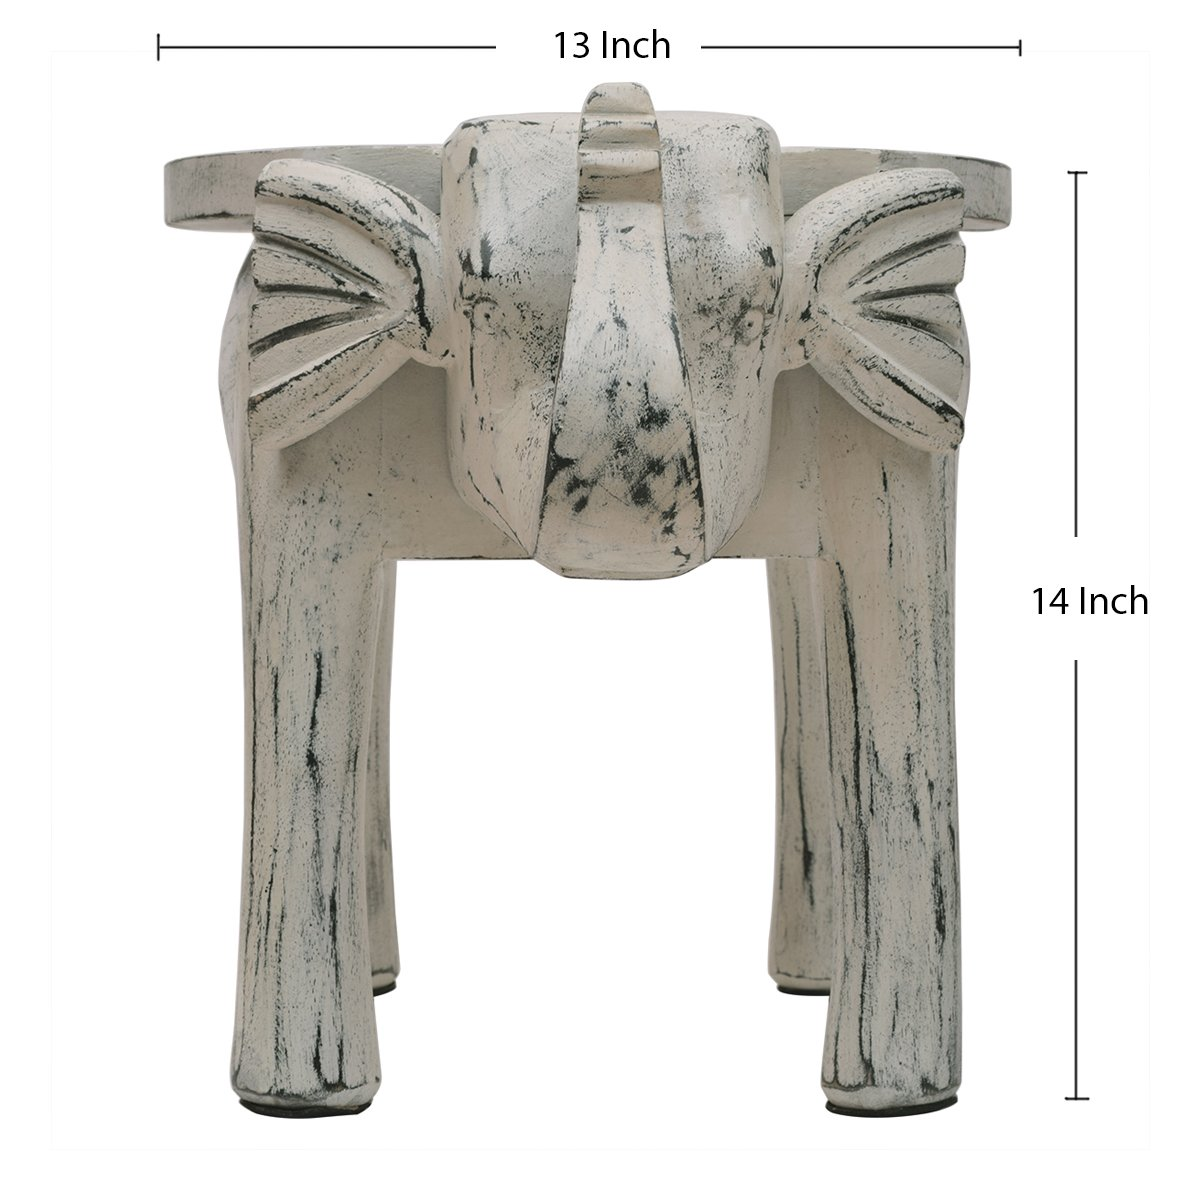 Wooden Side Table End Table Round Bedside Sofa Stool White Distressed Finish Elephant Head Design Home Kids Room Furniture Shabby Chic Decor - 18 x 13 x 14 inches by Store Indya (Image #7)